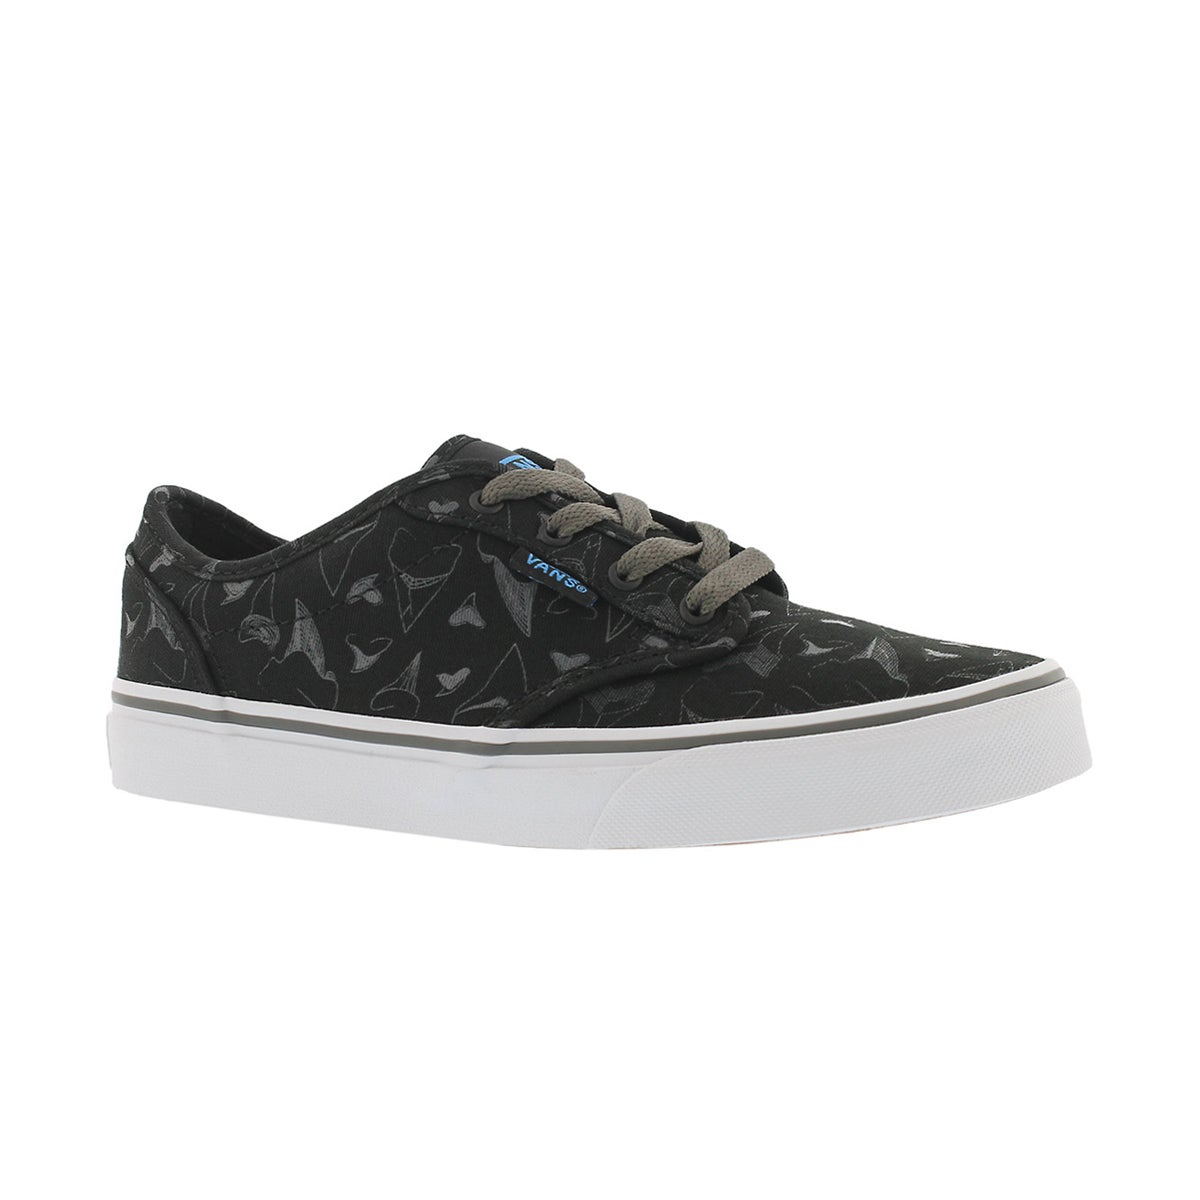 Boys' ATWOOD black canvas lace up sneakers